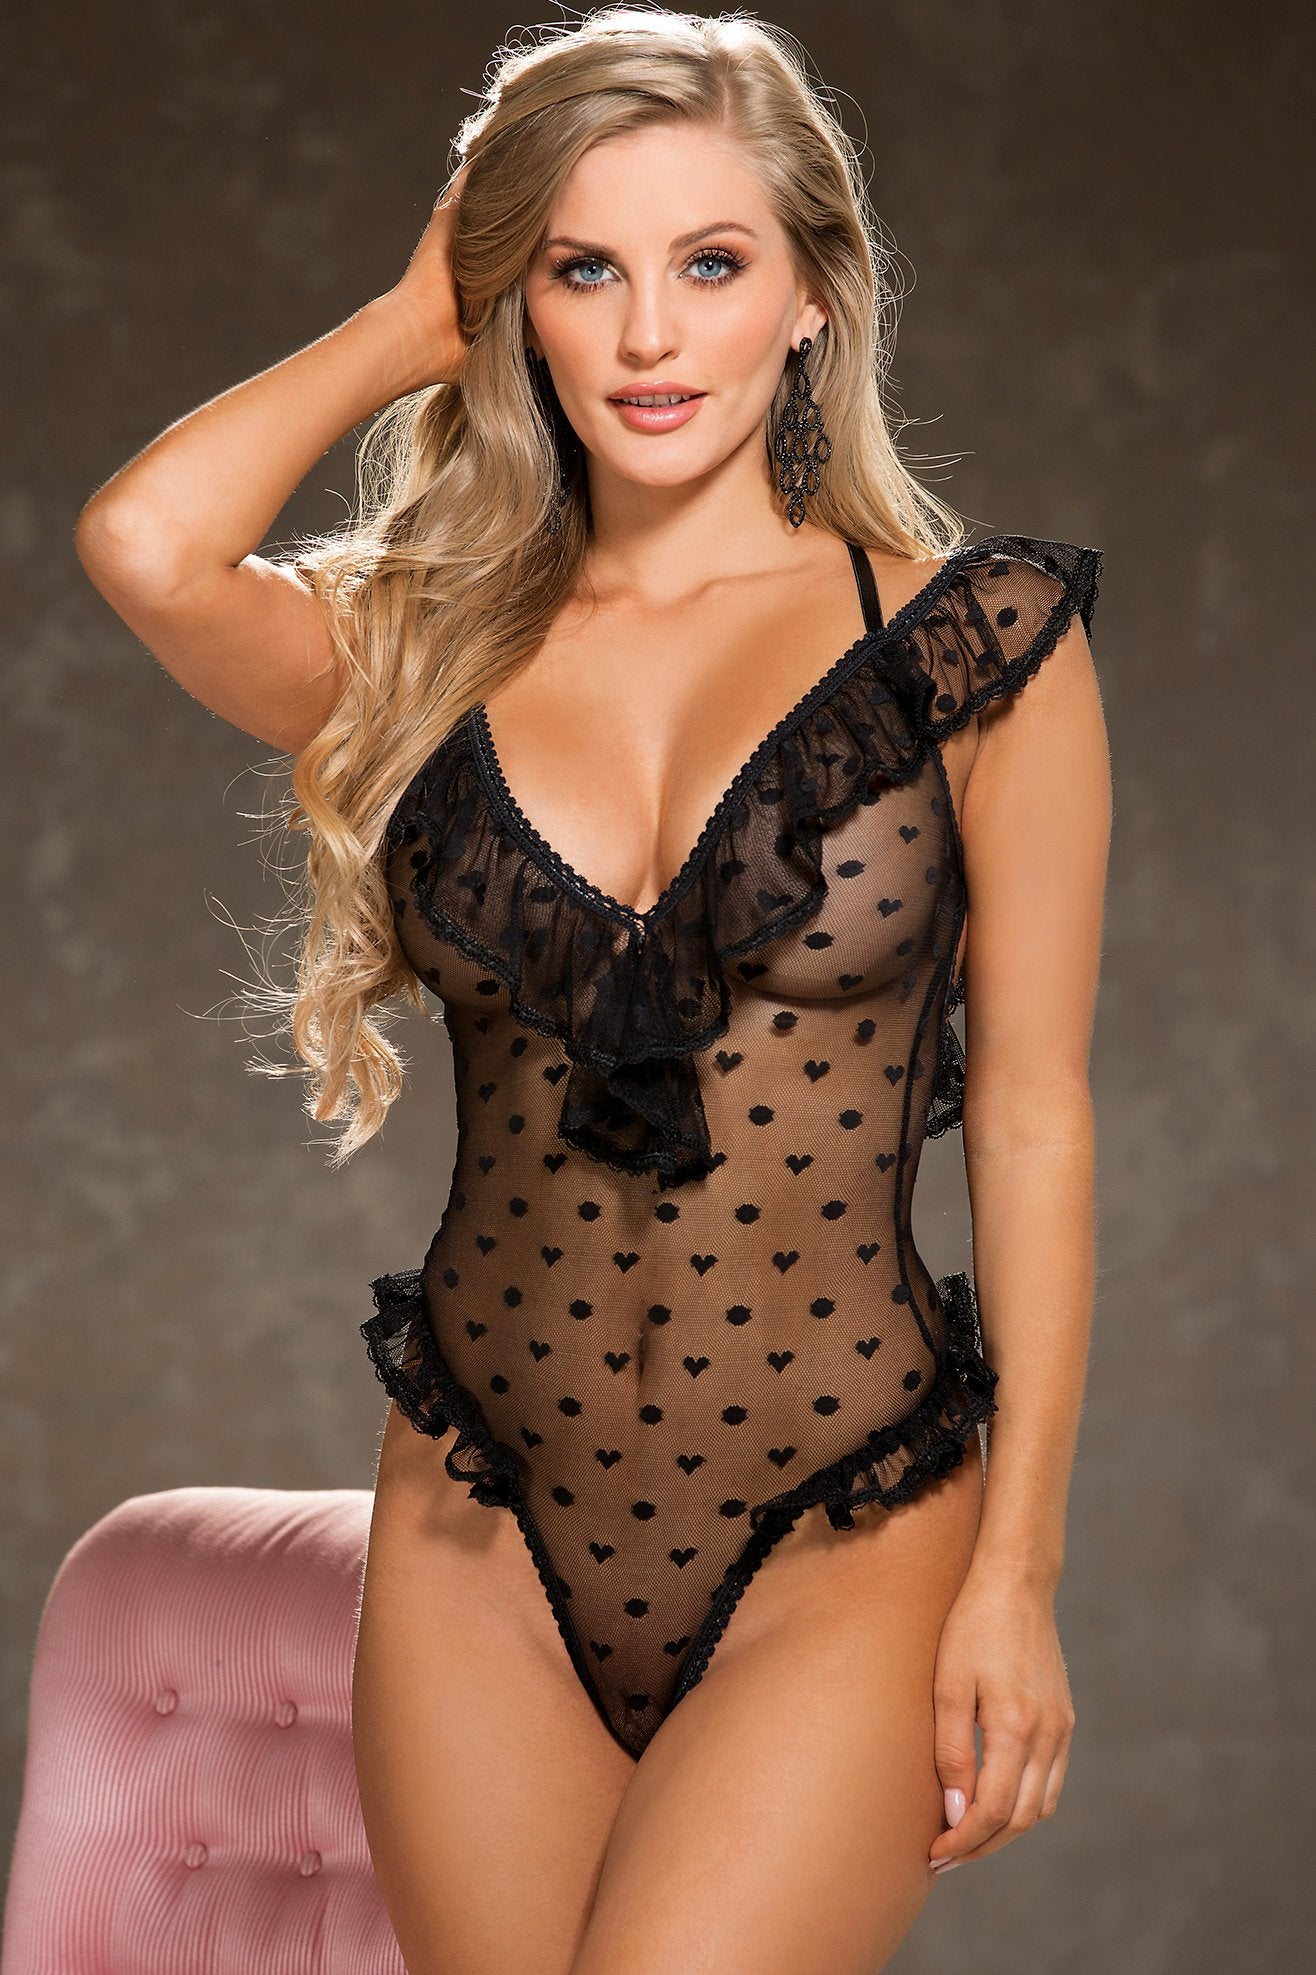 Sexy heart bodysuits with polka dots